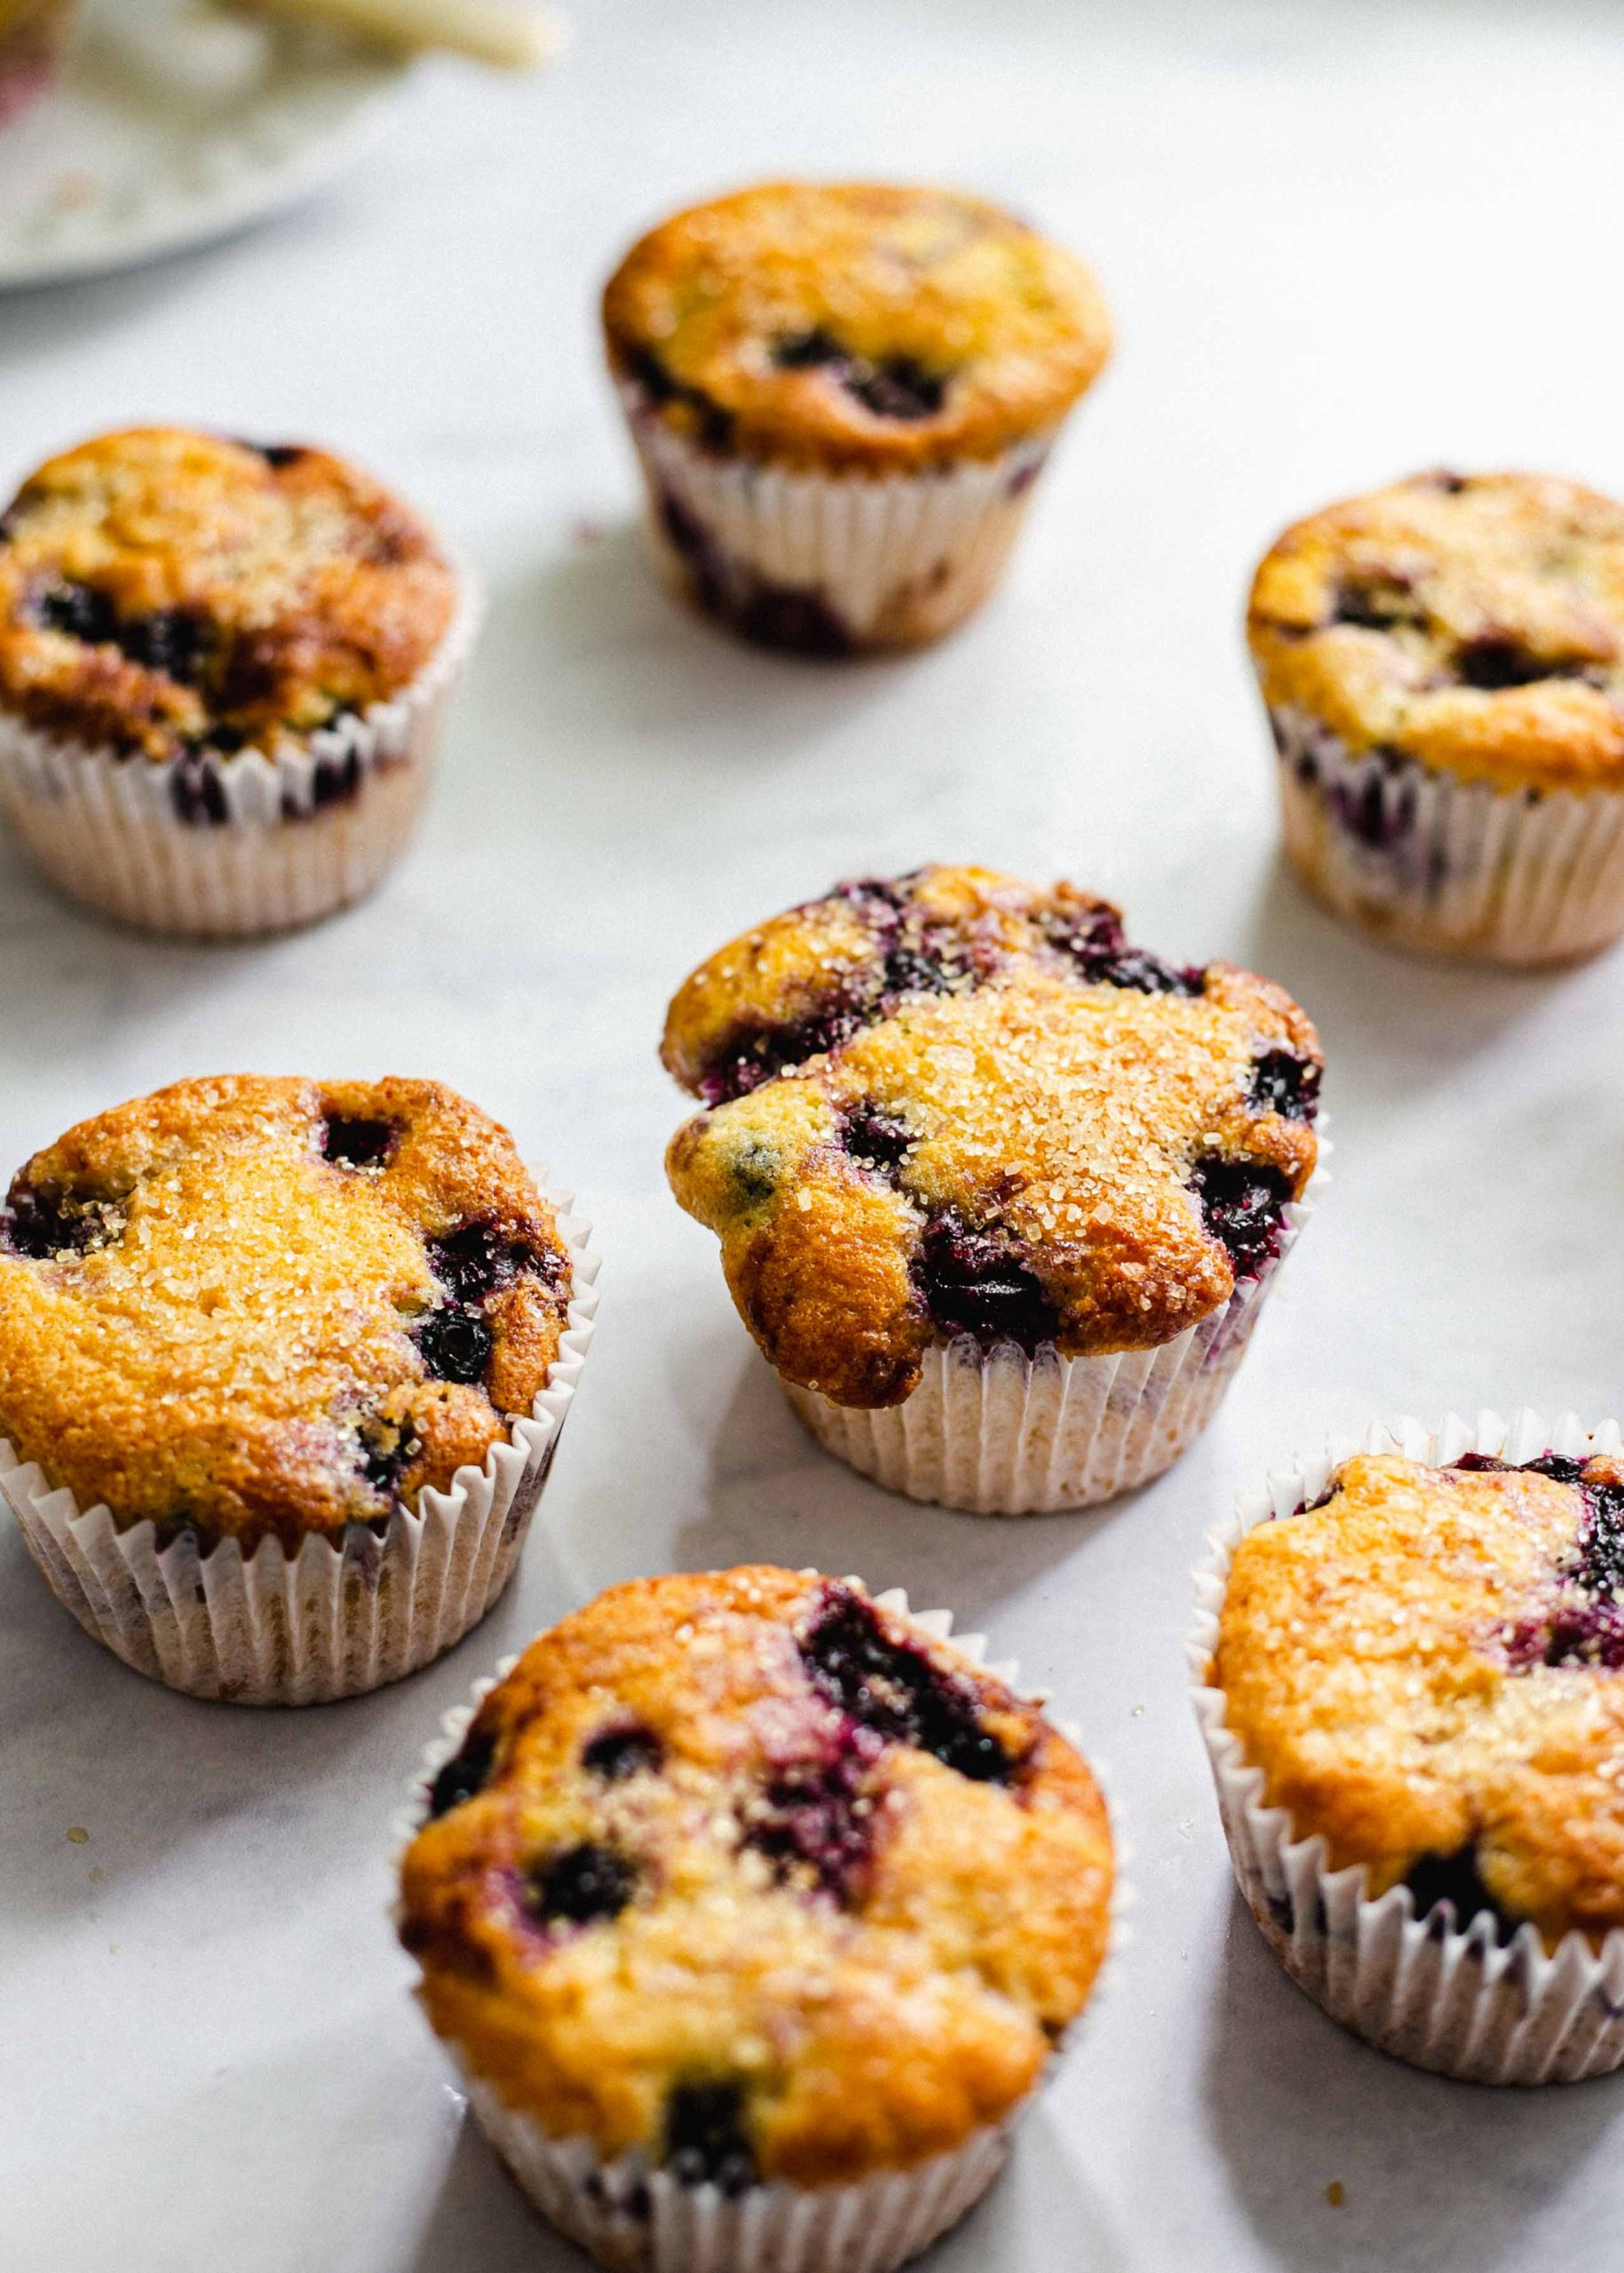 Gluten free and low FODMAP blueberry muffins